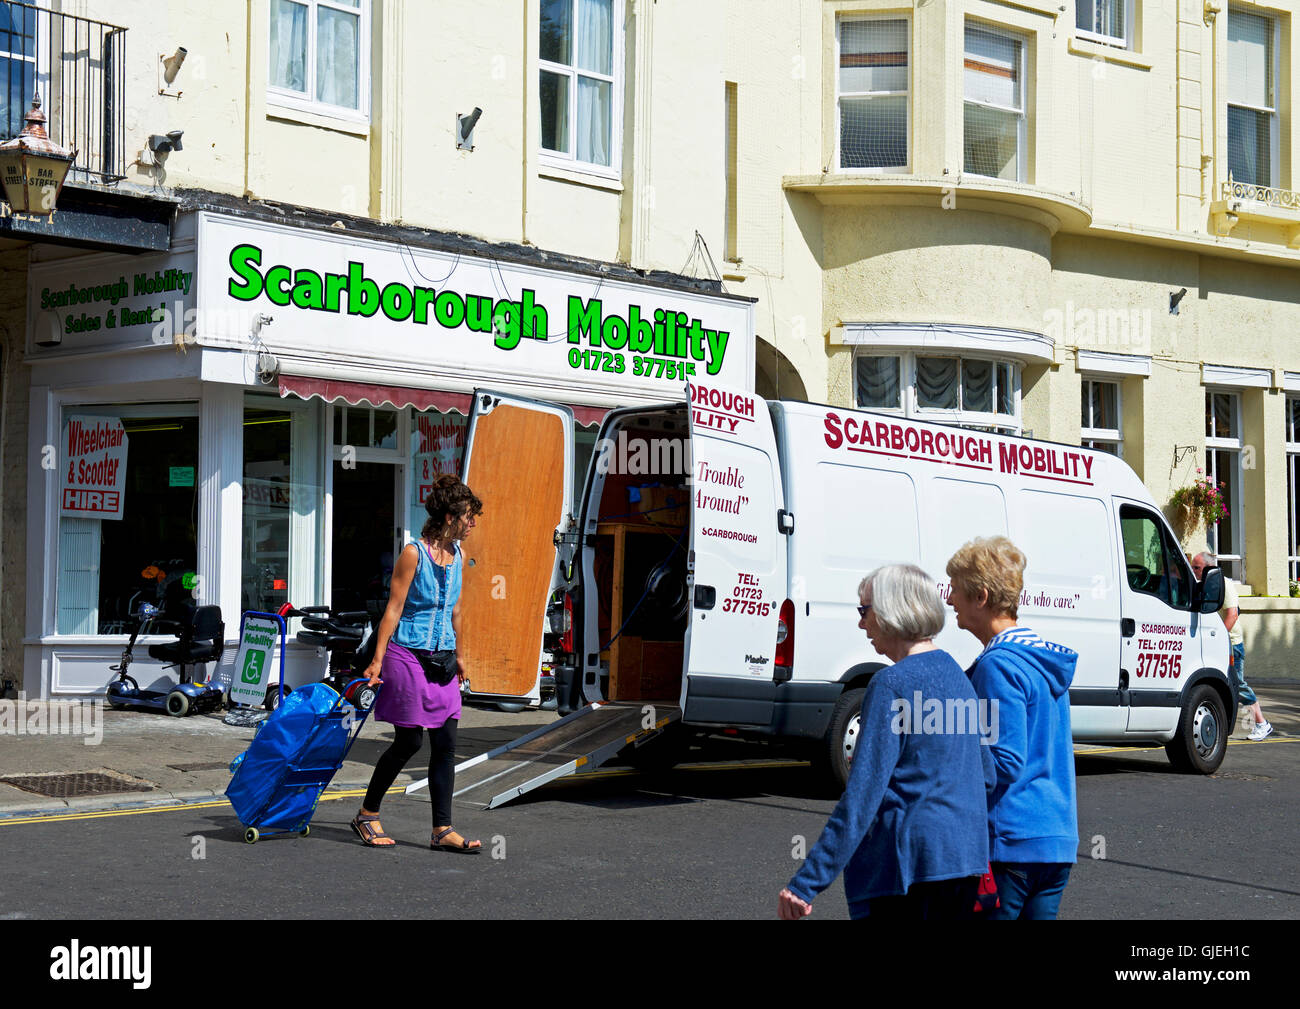 Delivery van outside shop, Scarborough Mobility, selling mobility scooters, Scarborough, North Yorkshire, England - Stock Image